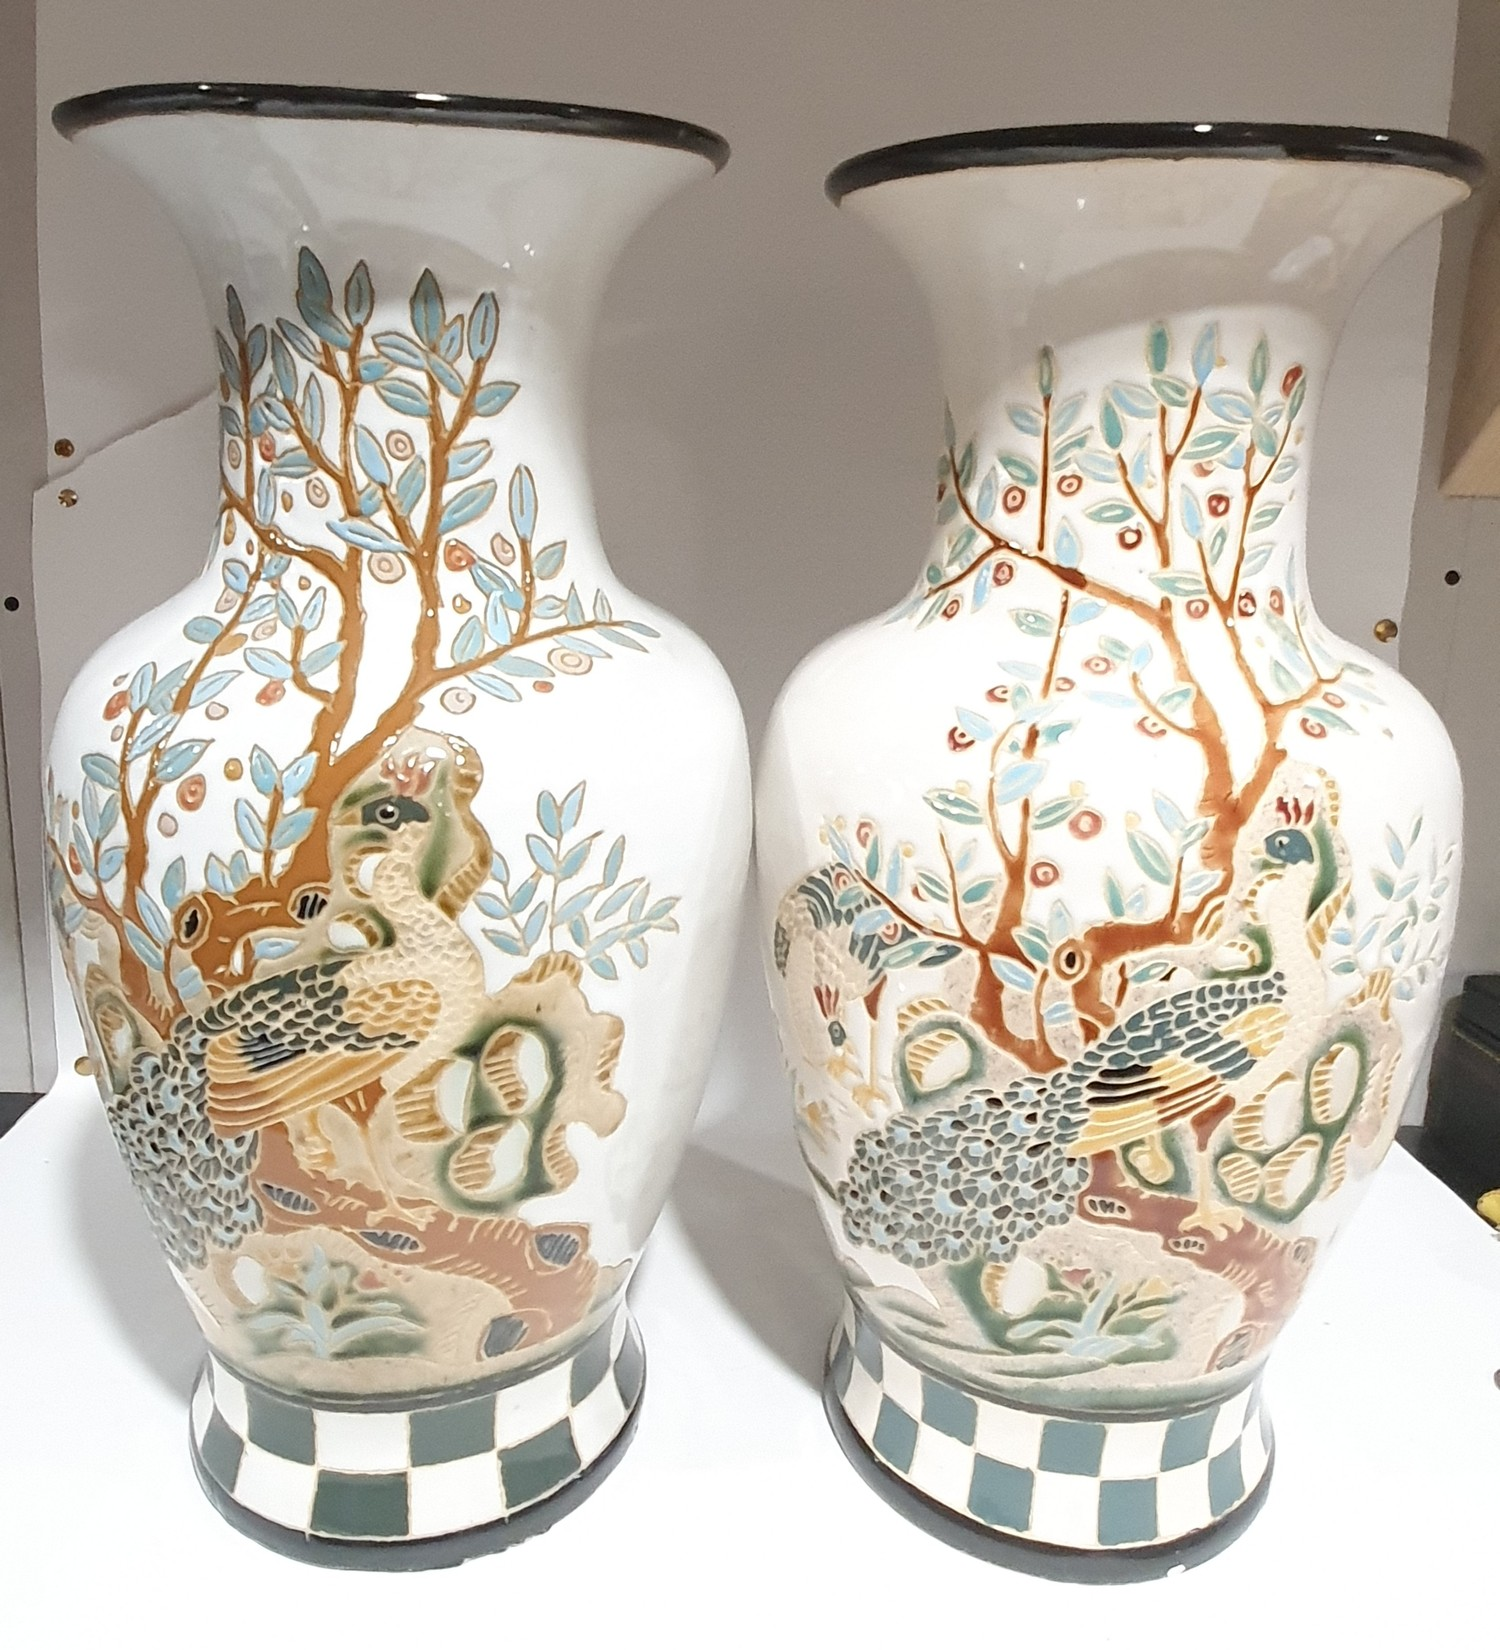 A pair of large oriental vases with tree and peacock decoration. 50cm high. Statement interior